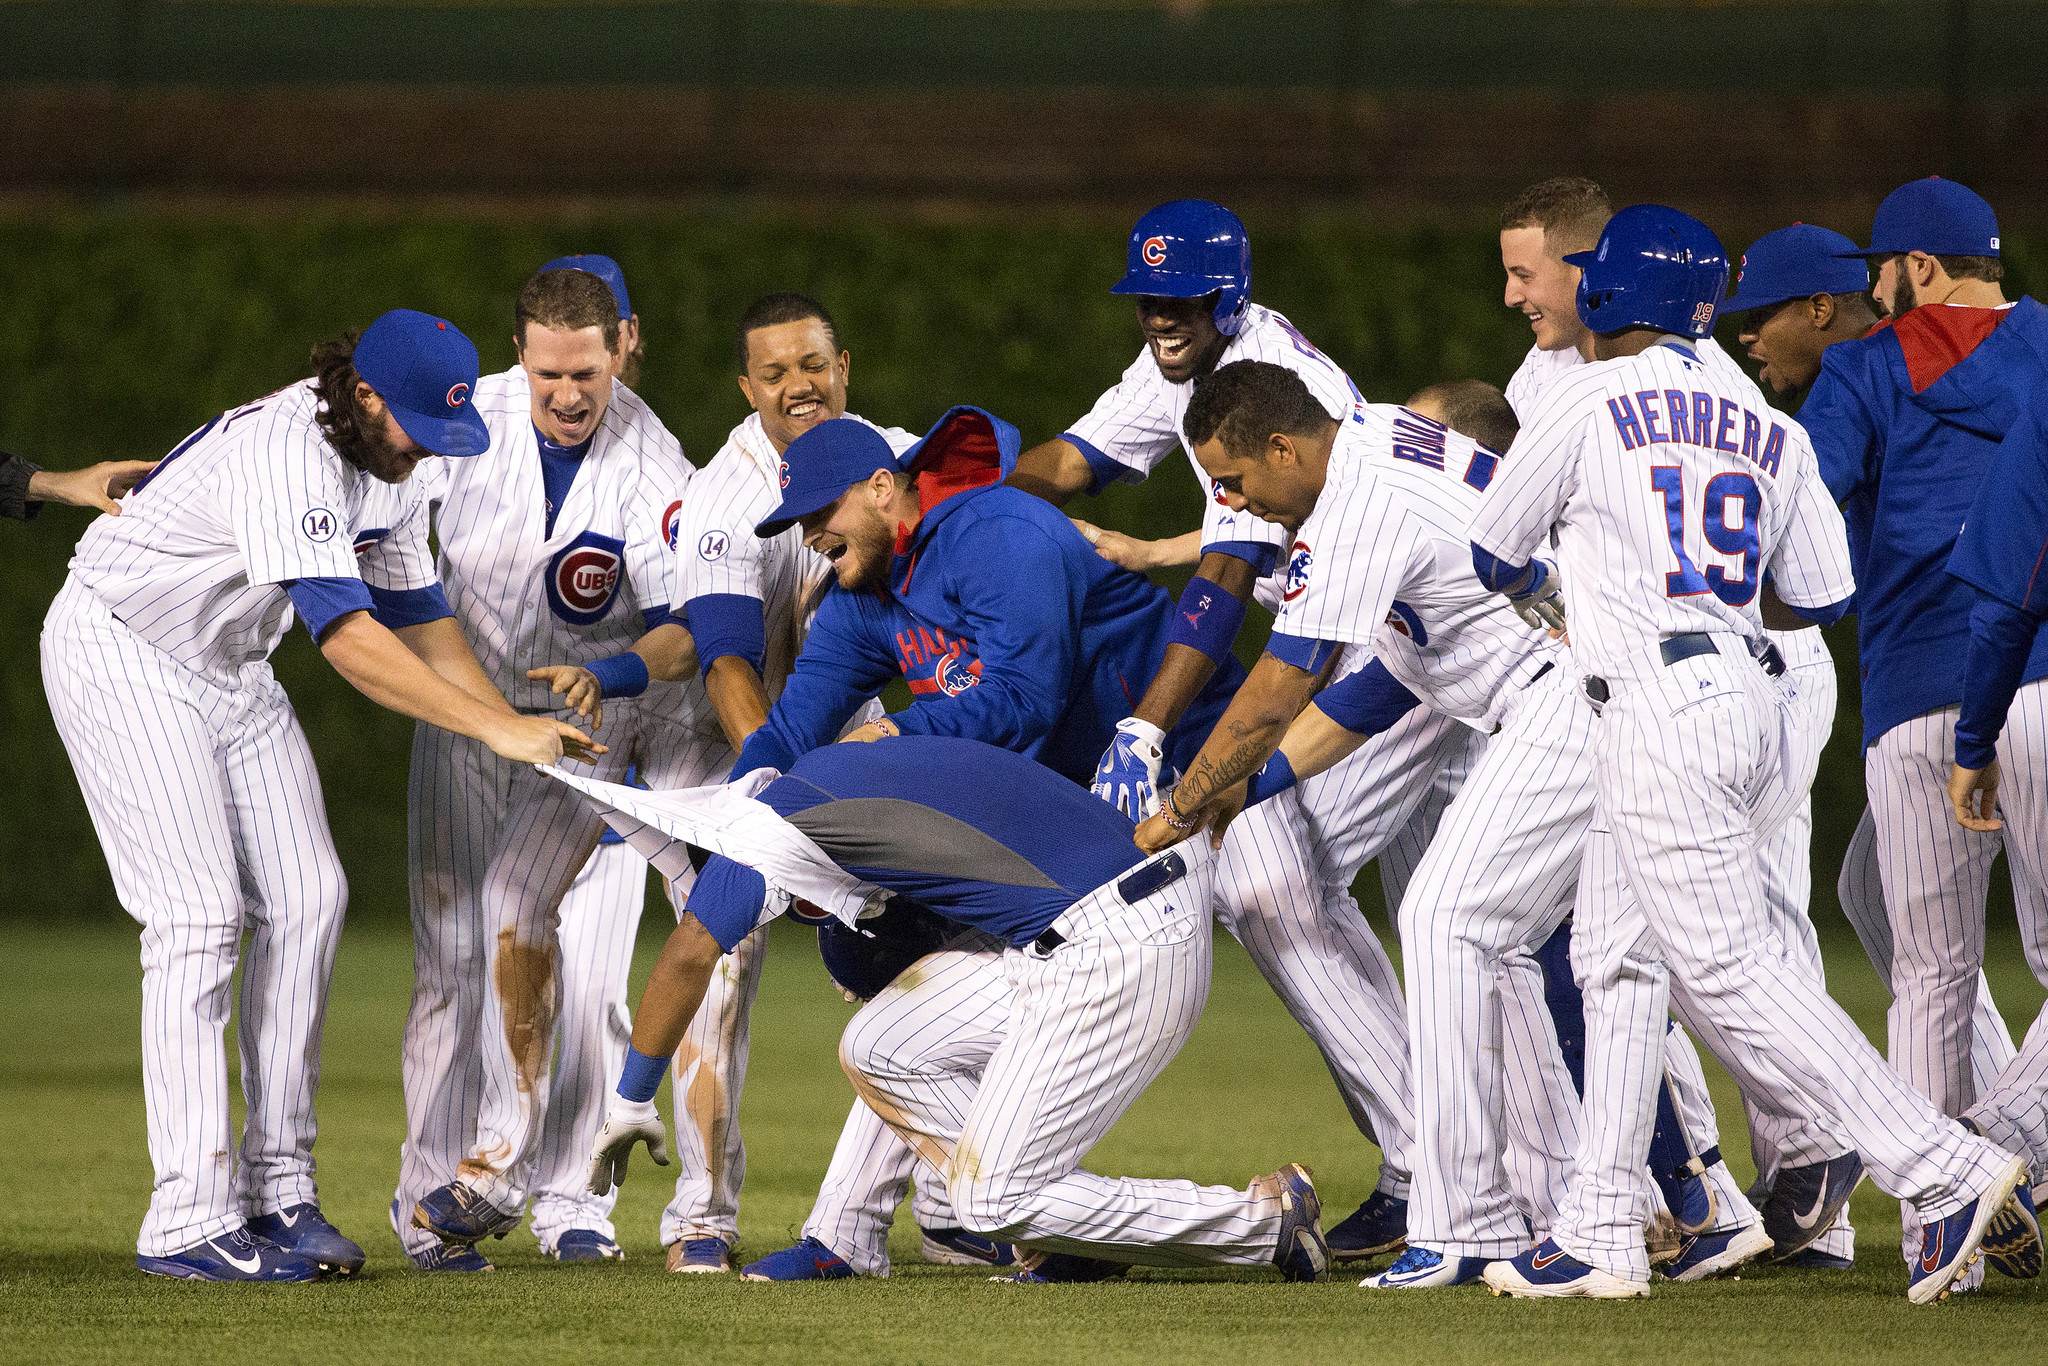 Cubs Addison Russell, Kris Bryant step up against  ~ Wand Tv Cubs